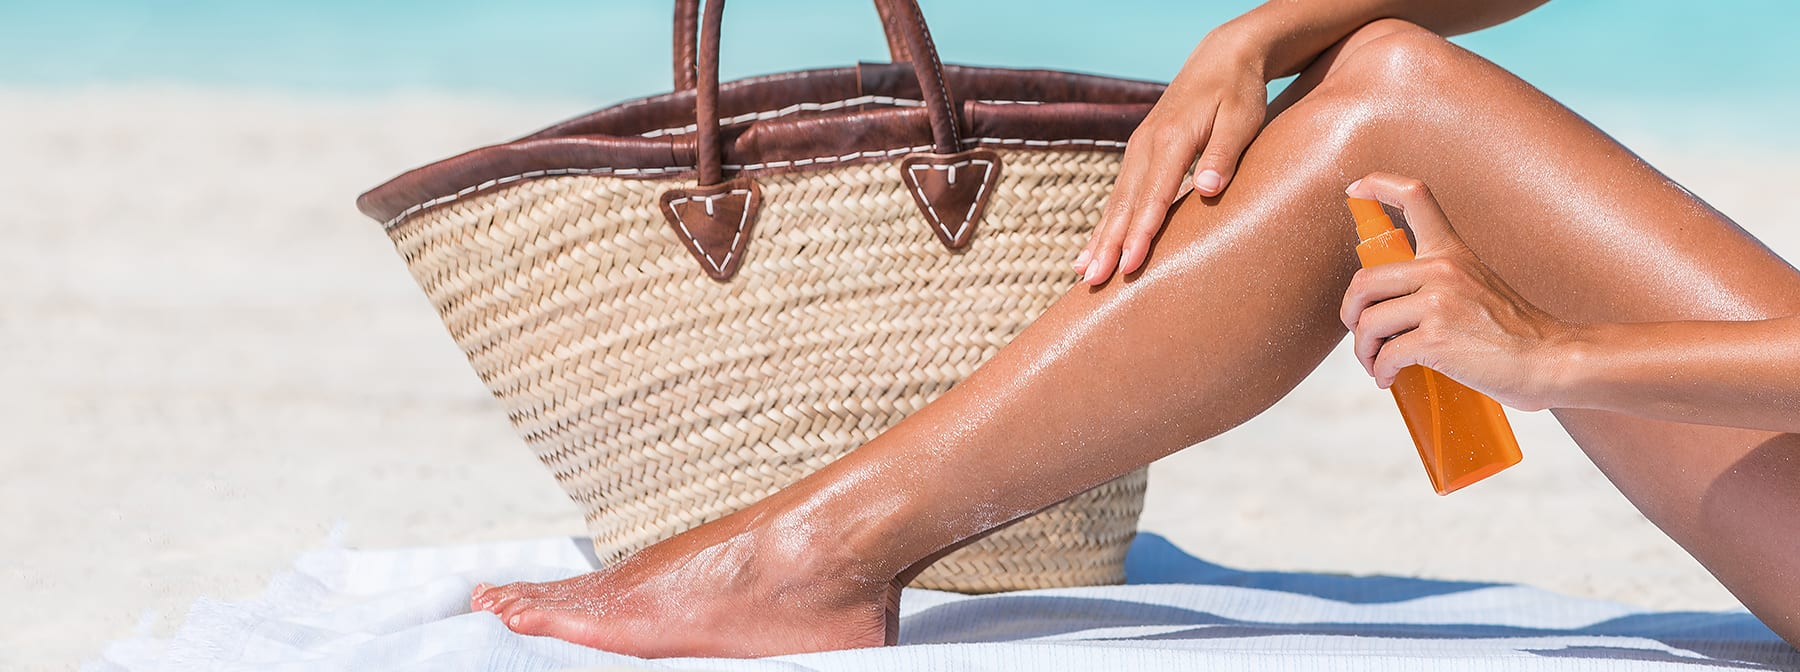 Tips to Prep for and Maintain the Best Spray Tan